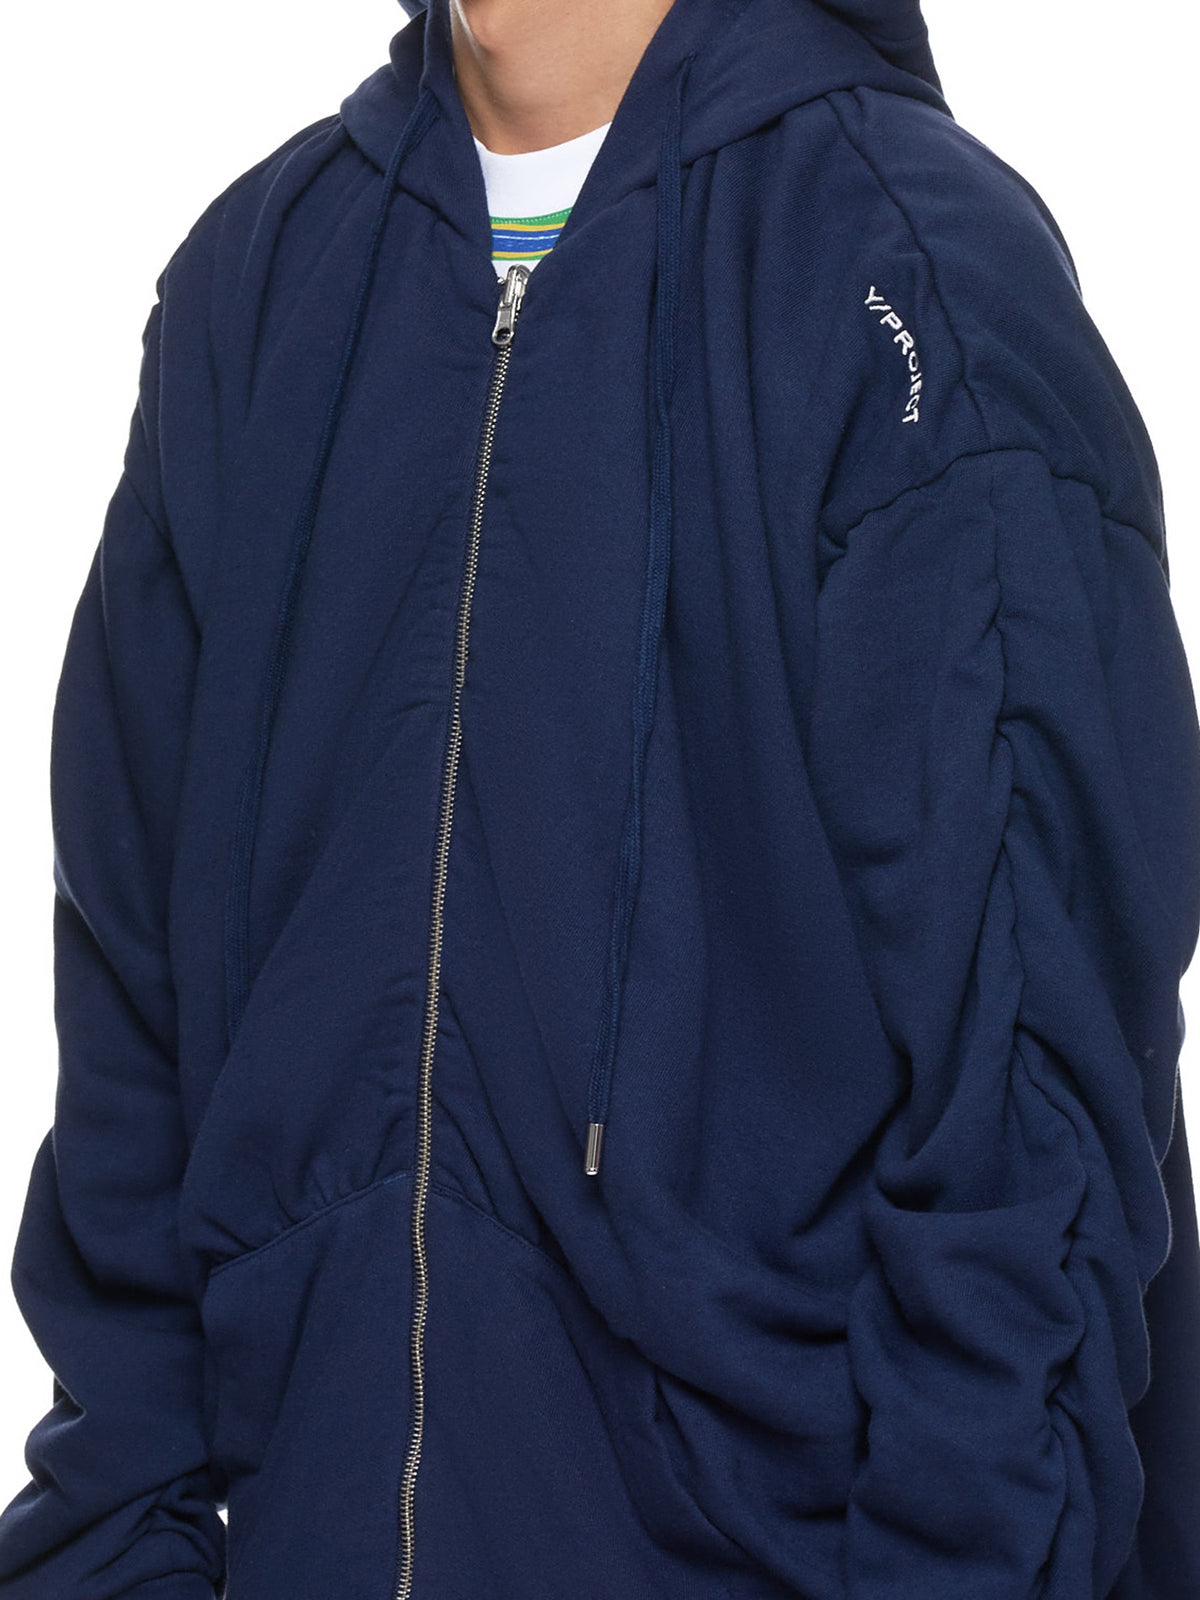 Reversible Hoodie (SWEAT23-S16-MF26-NAVY)